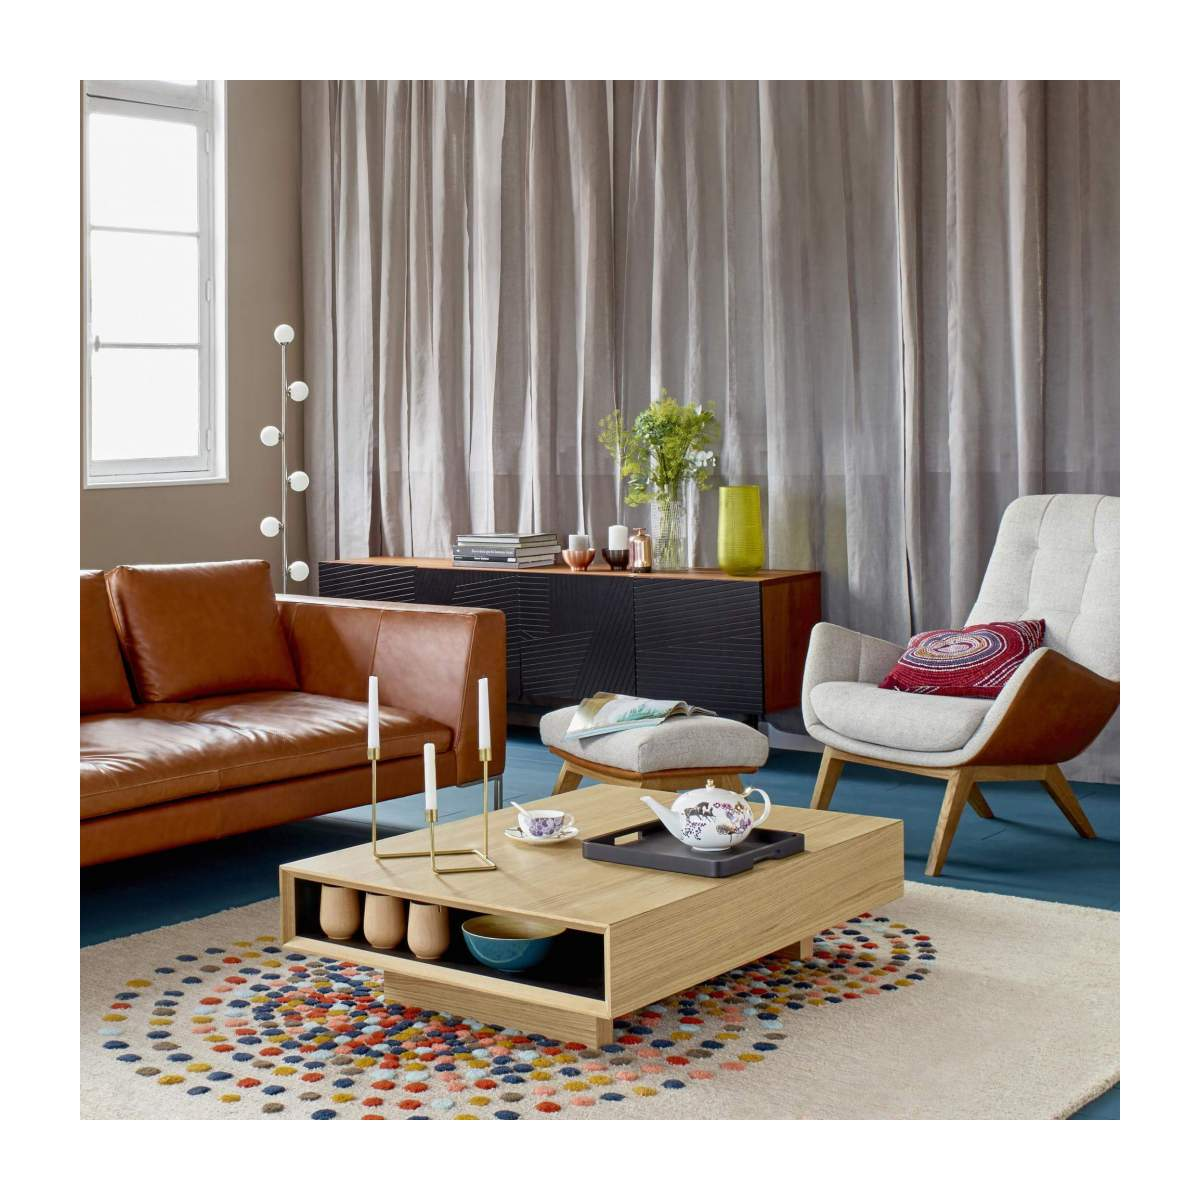 Hand tufted carpet made of wool 250x350cm mulitcolor n°4